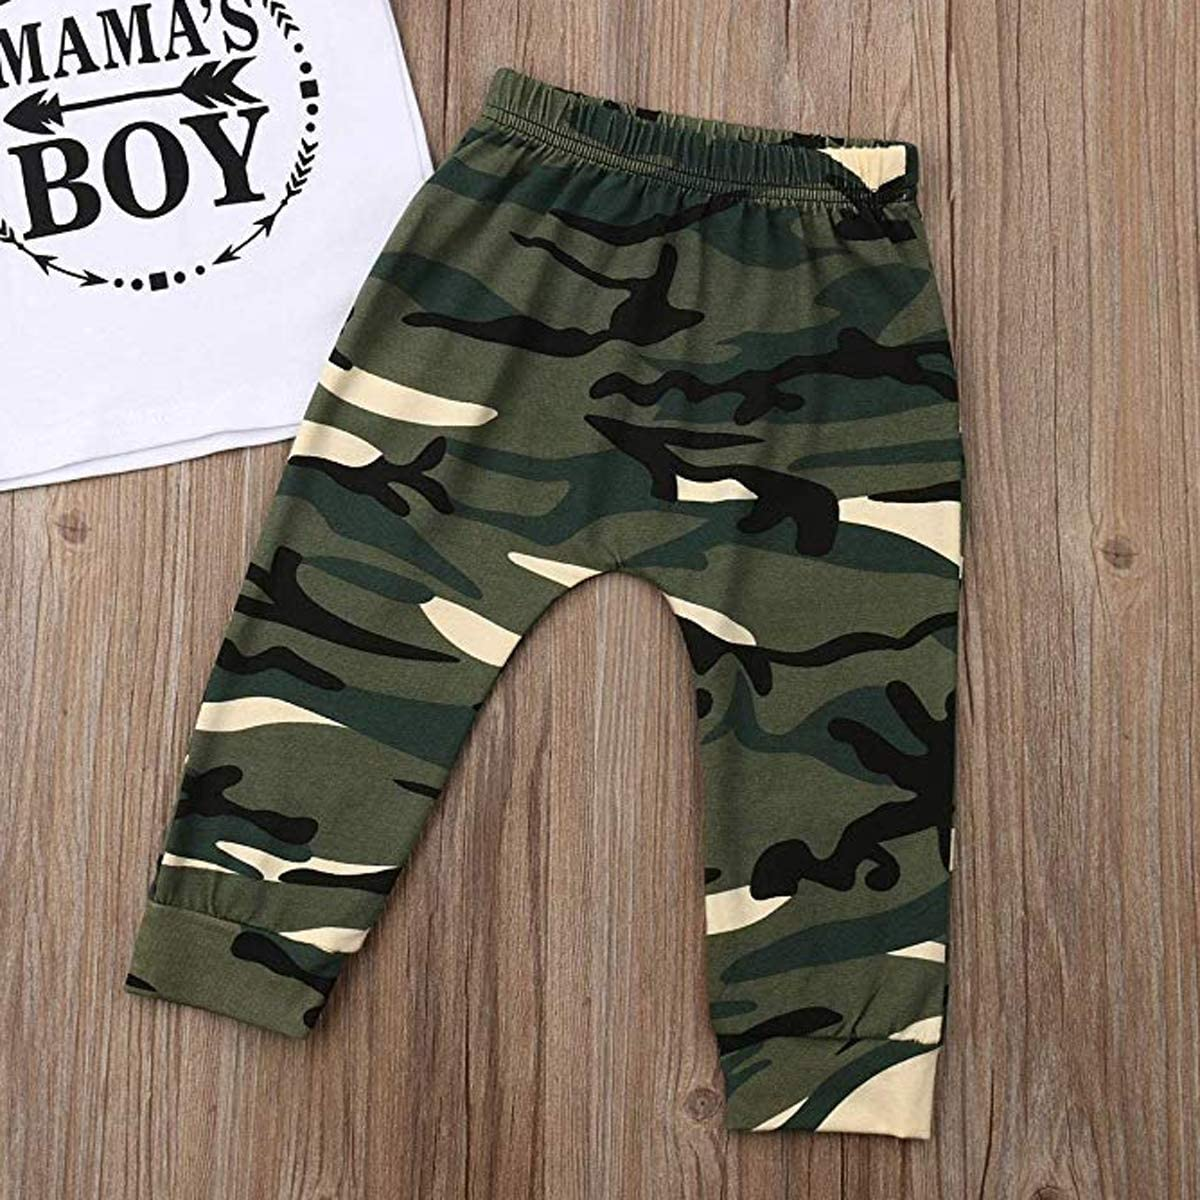 Newborn Infant Baby Boys T-Shirt King Letter Printed Top Camouflage Short Pant Short Outfits